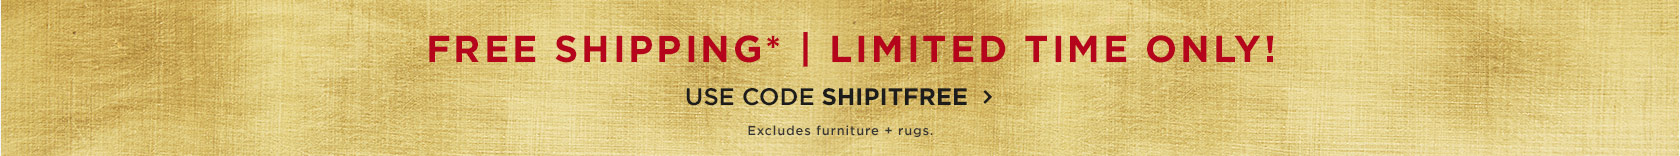 Limited Time Only! Free Shipping With Code SHIPITFREE